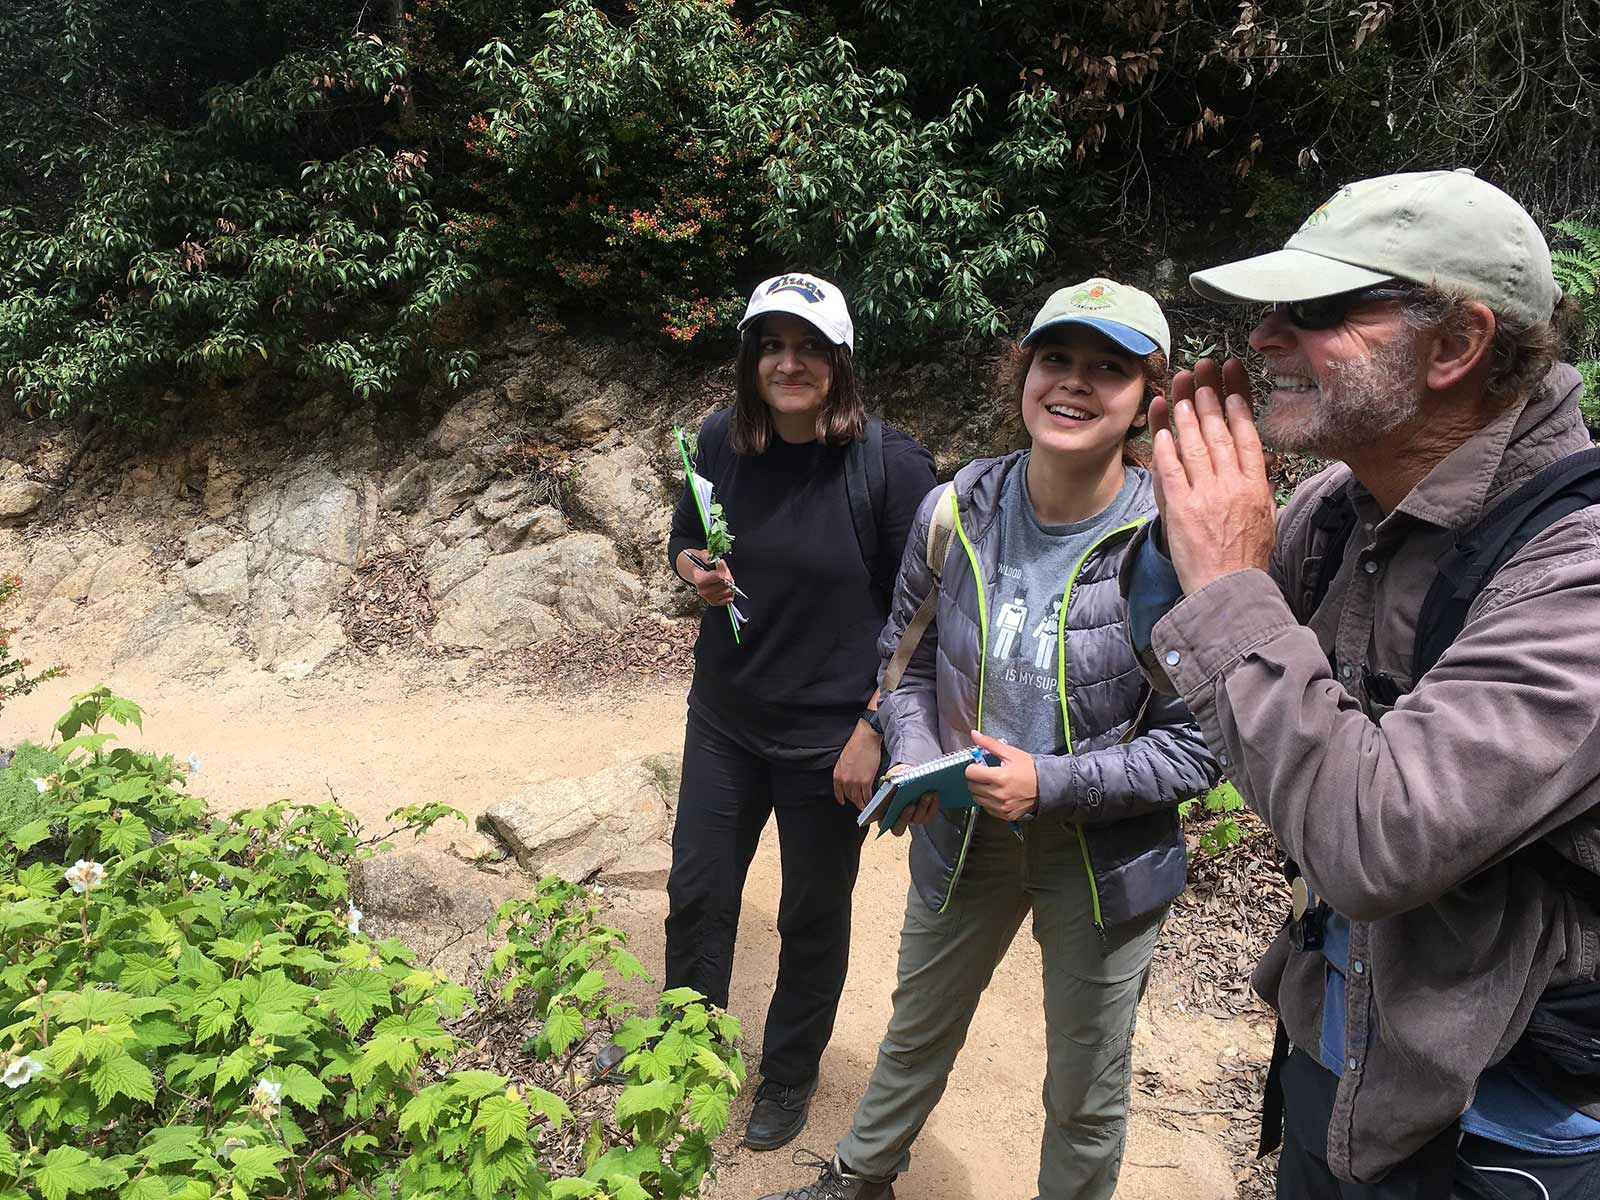 Mariana, Andrea, and California Native Plant Program Director Brett Hall look for the next rapid assessment site for a San Mateo vegetation mapping project. Photo credit: Lucy Ferneyhough, courtesy of University of California Santa Cruz Arboretum.